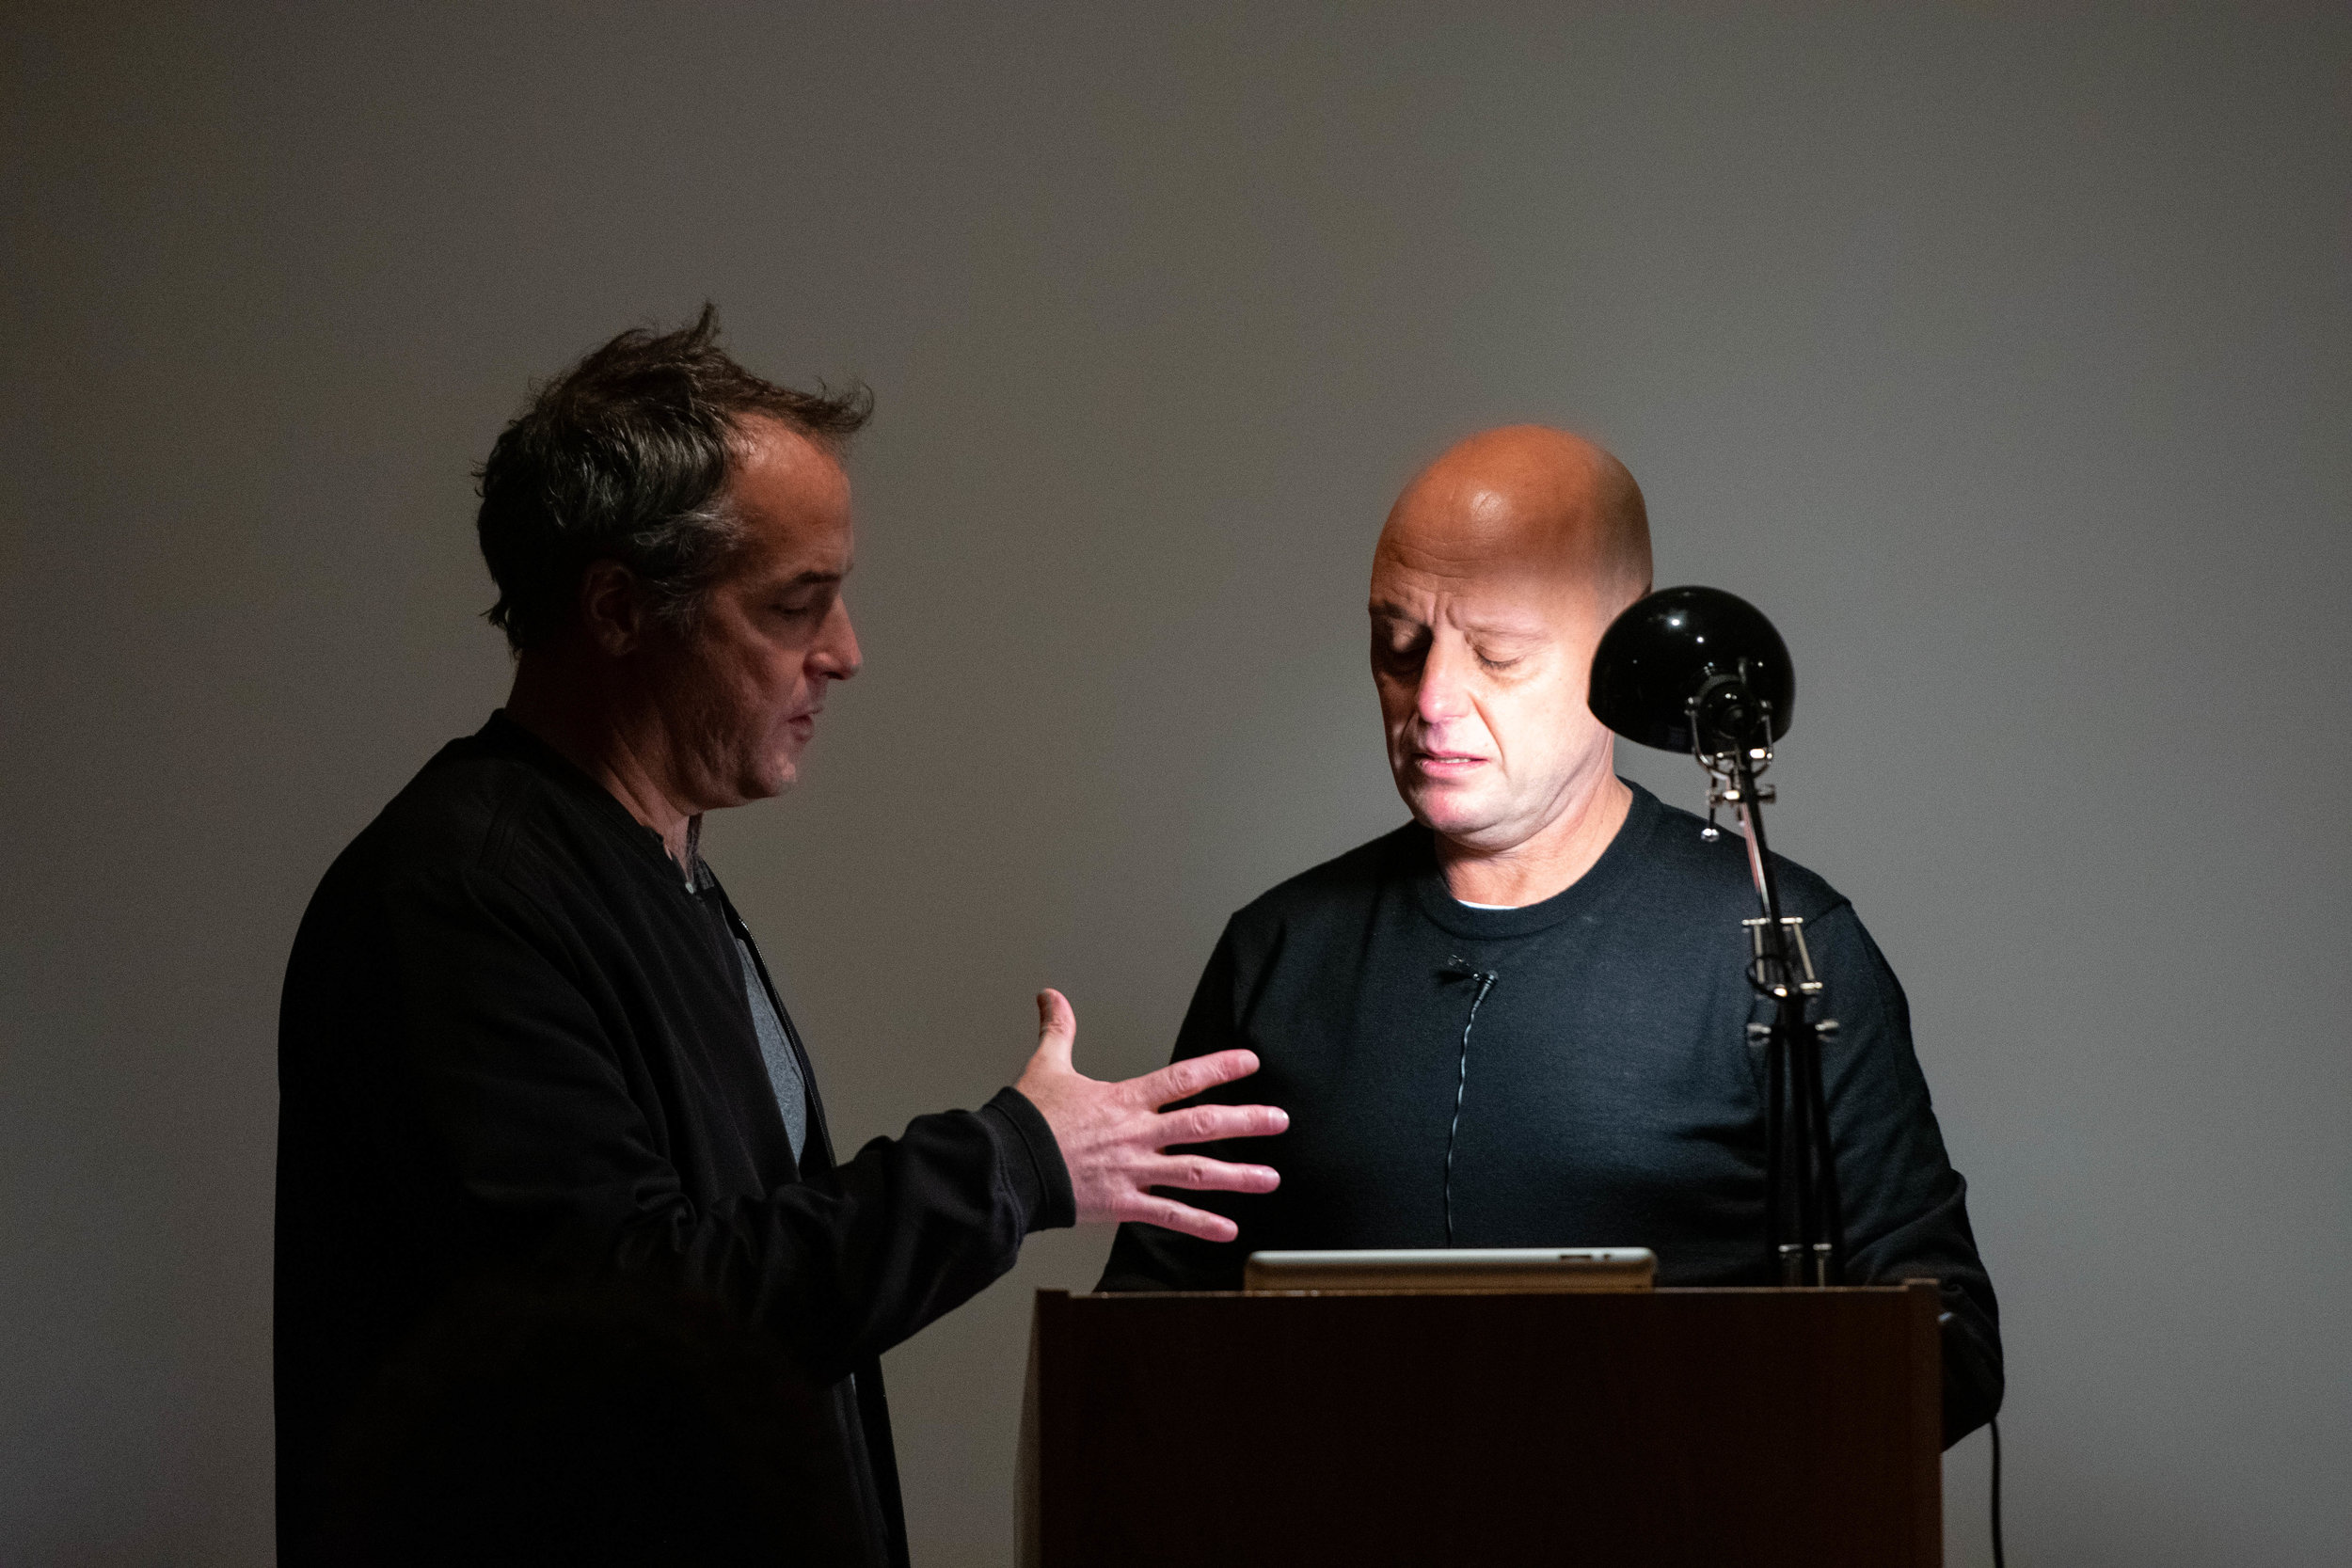 Actor Tzvet Lazar rehearsing 'The Whole Infernal Sequence' with the author and filmmaker, Reed O'Beirne. Photo by Zula Ra